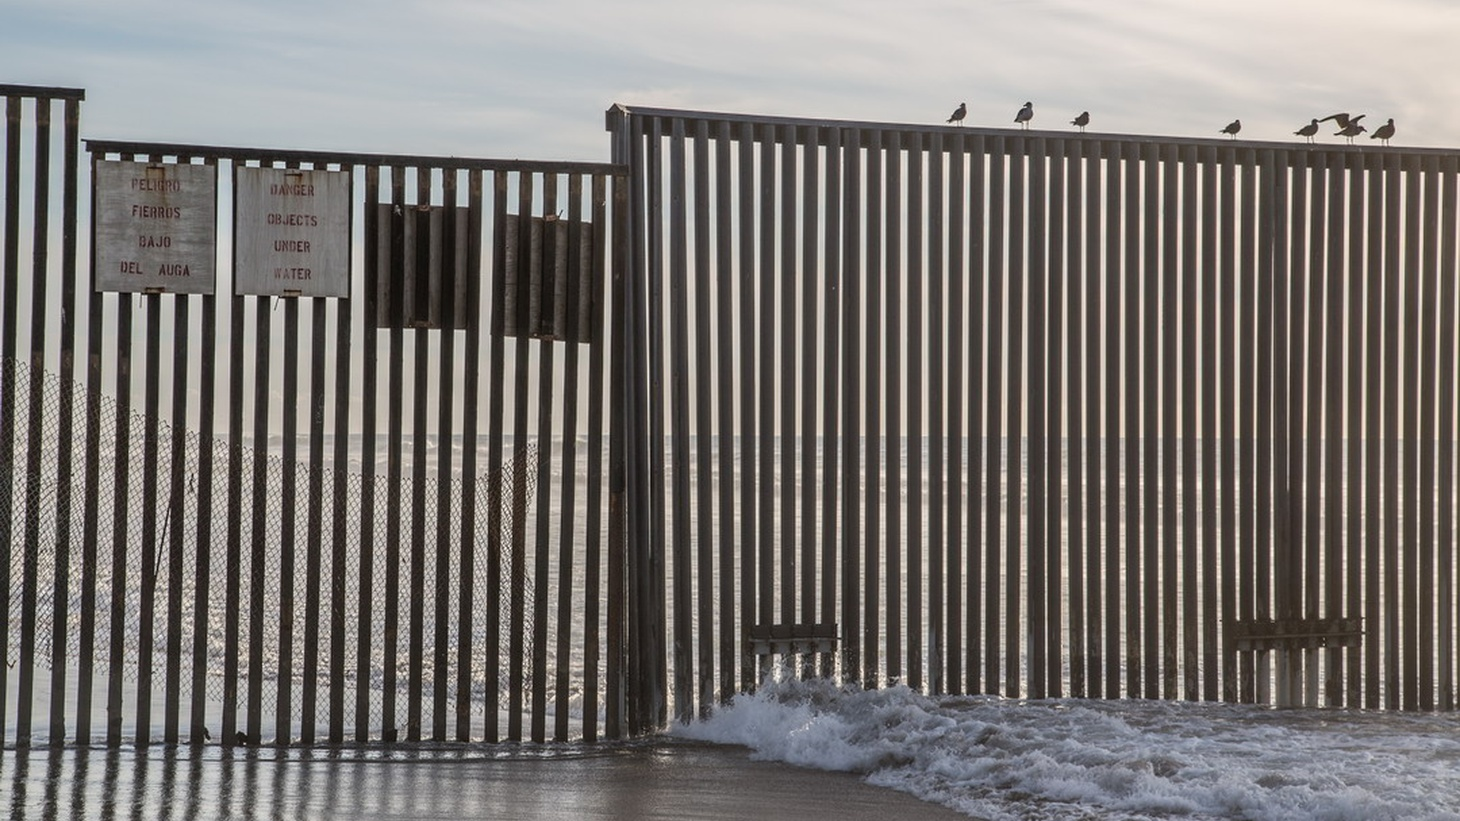 """President Trump's """"zero tolerance"""" policy at the border means everyone who crosses illegally and is caught will be prosecuted. That's expected to swell lock-ups and courtrooms."""